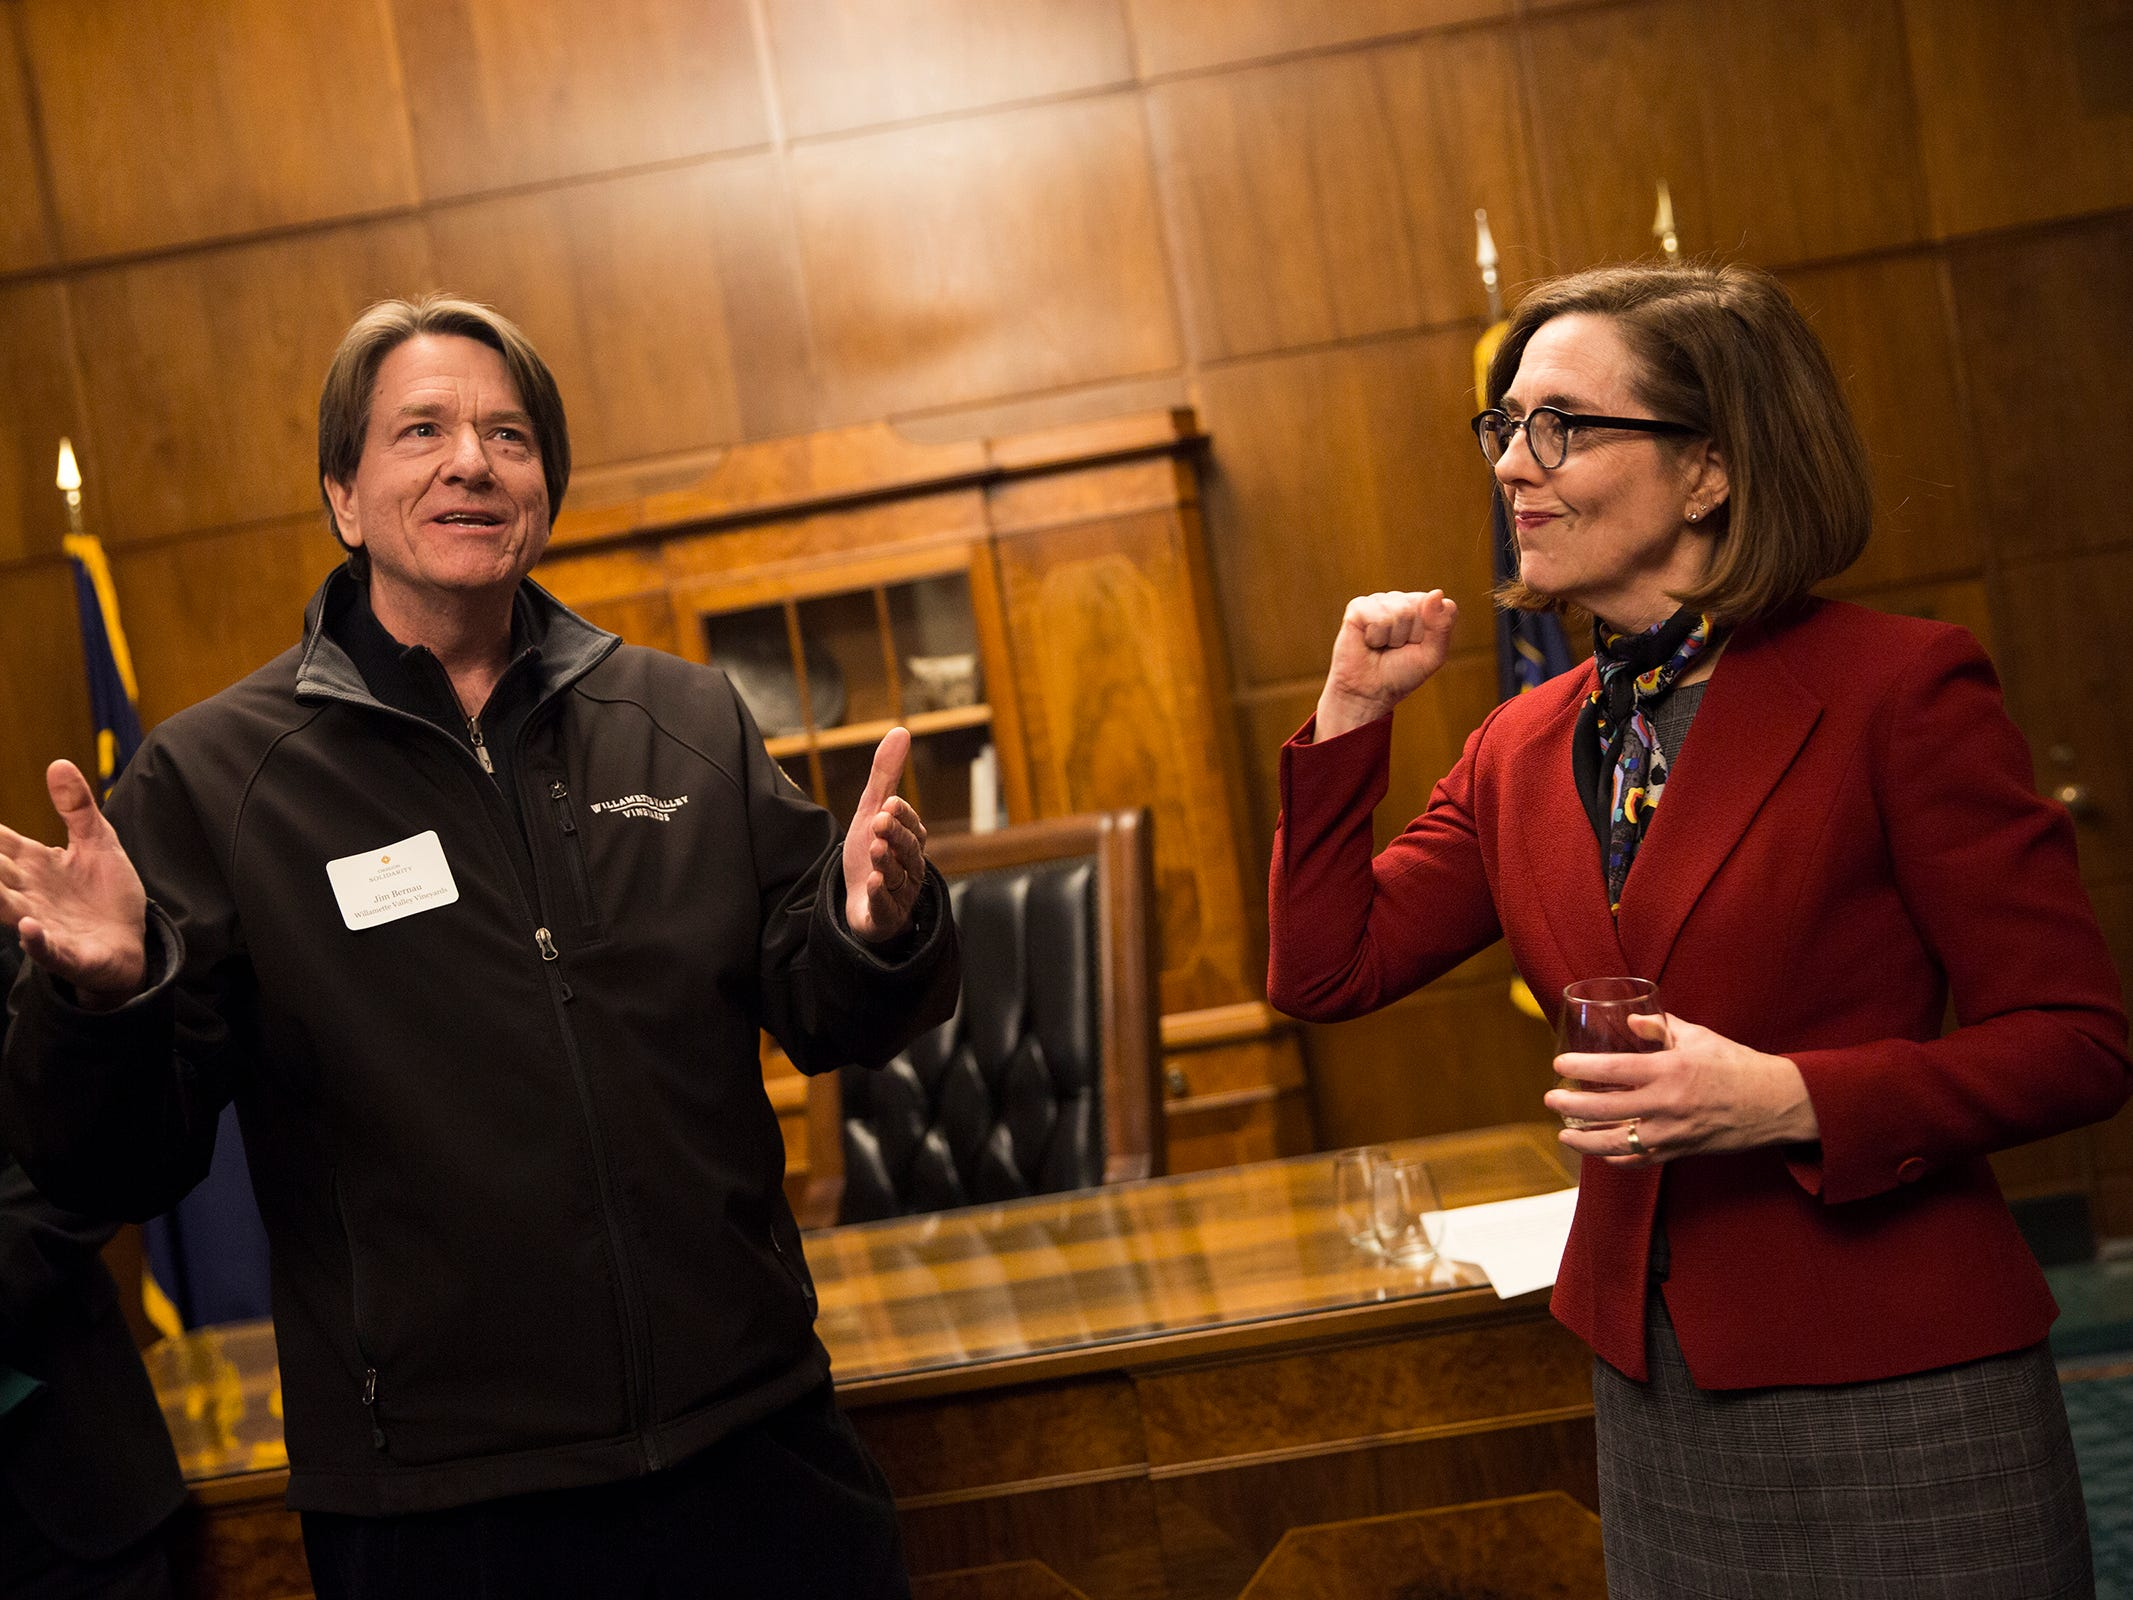 Willamette Valley Vineyard founder and president Jim Bernau and Gov. Kate Brown speak at a release party for the Oregon Solidarity Rose of Pinot Noir in the Governor's ceremonial office at the Oregon State Capitol in Salem on Tuesday, March 5, 2019.